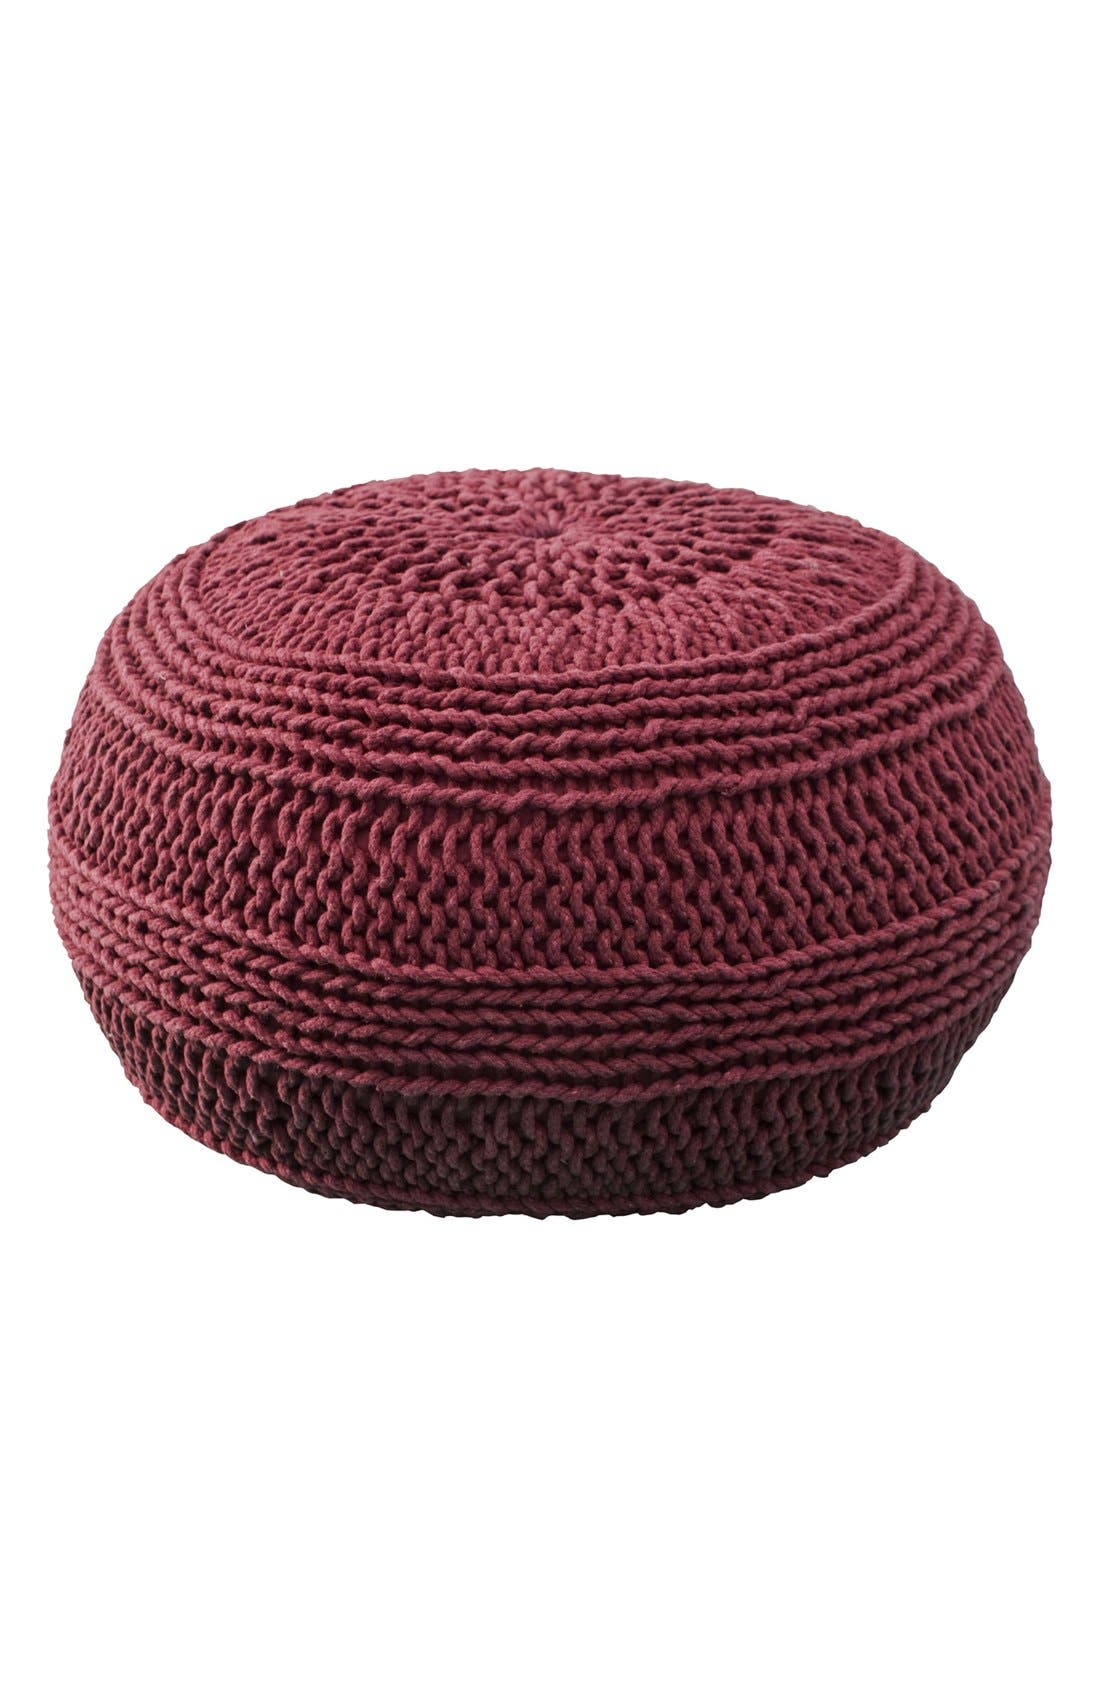 Alternate Image 1 Selected - Rizzy Home Woven Pouf